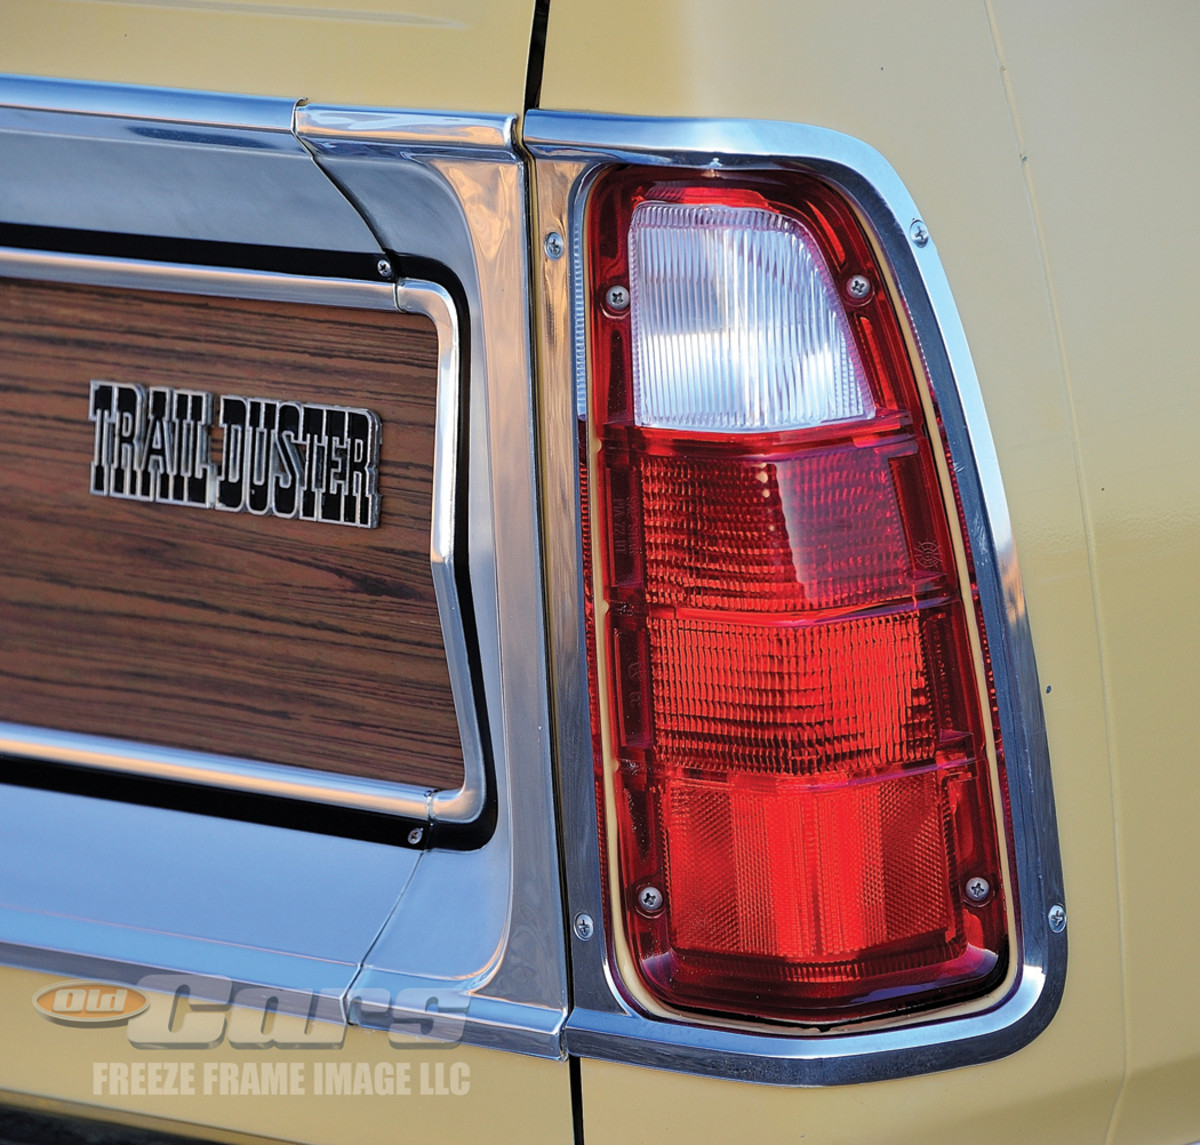 The Plymouth Trail Duster Sport features woodgrain trim on its tailgate and body-side moldings.